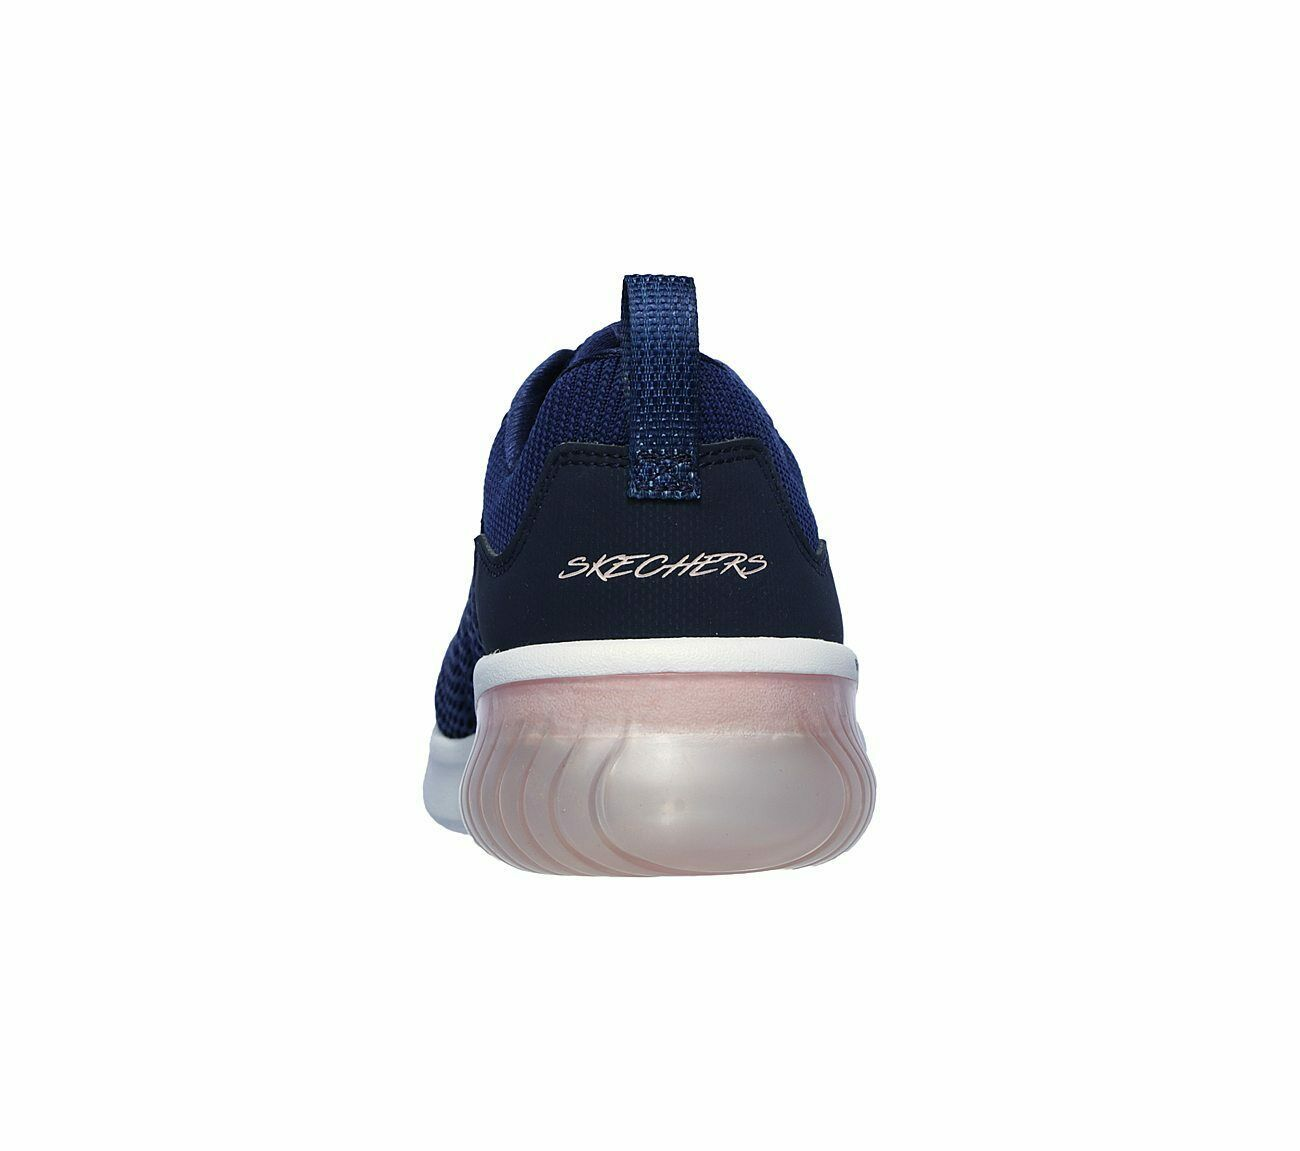 Skechers Navy Pink shoes Memory Foam Women's Sporty Air Ultra Flex Comfort 13290 image 6